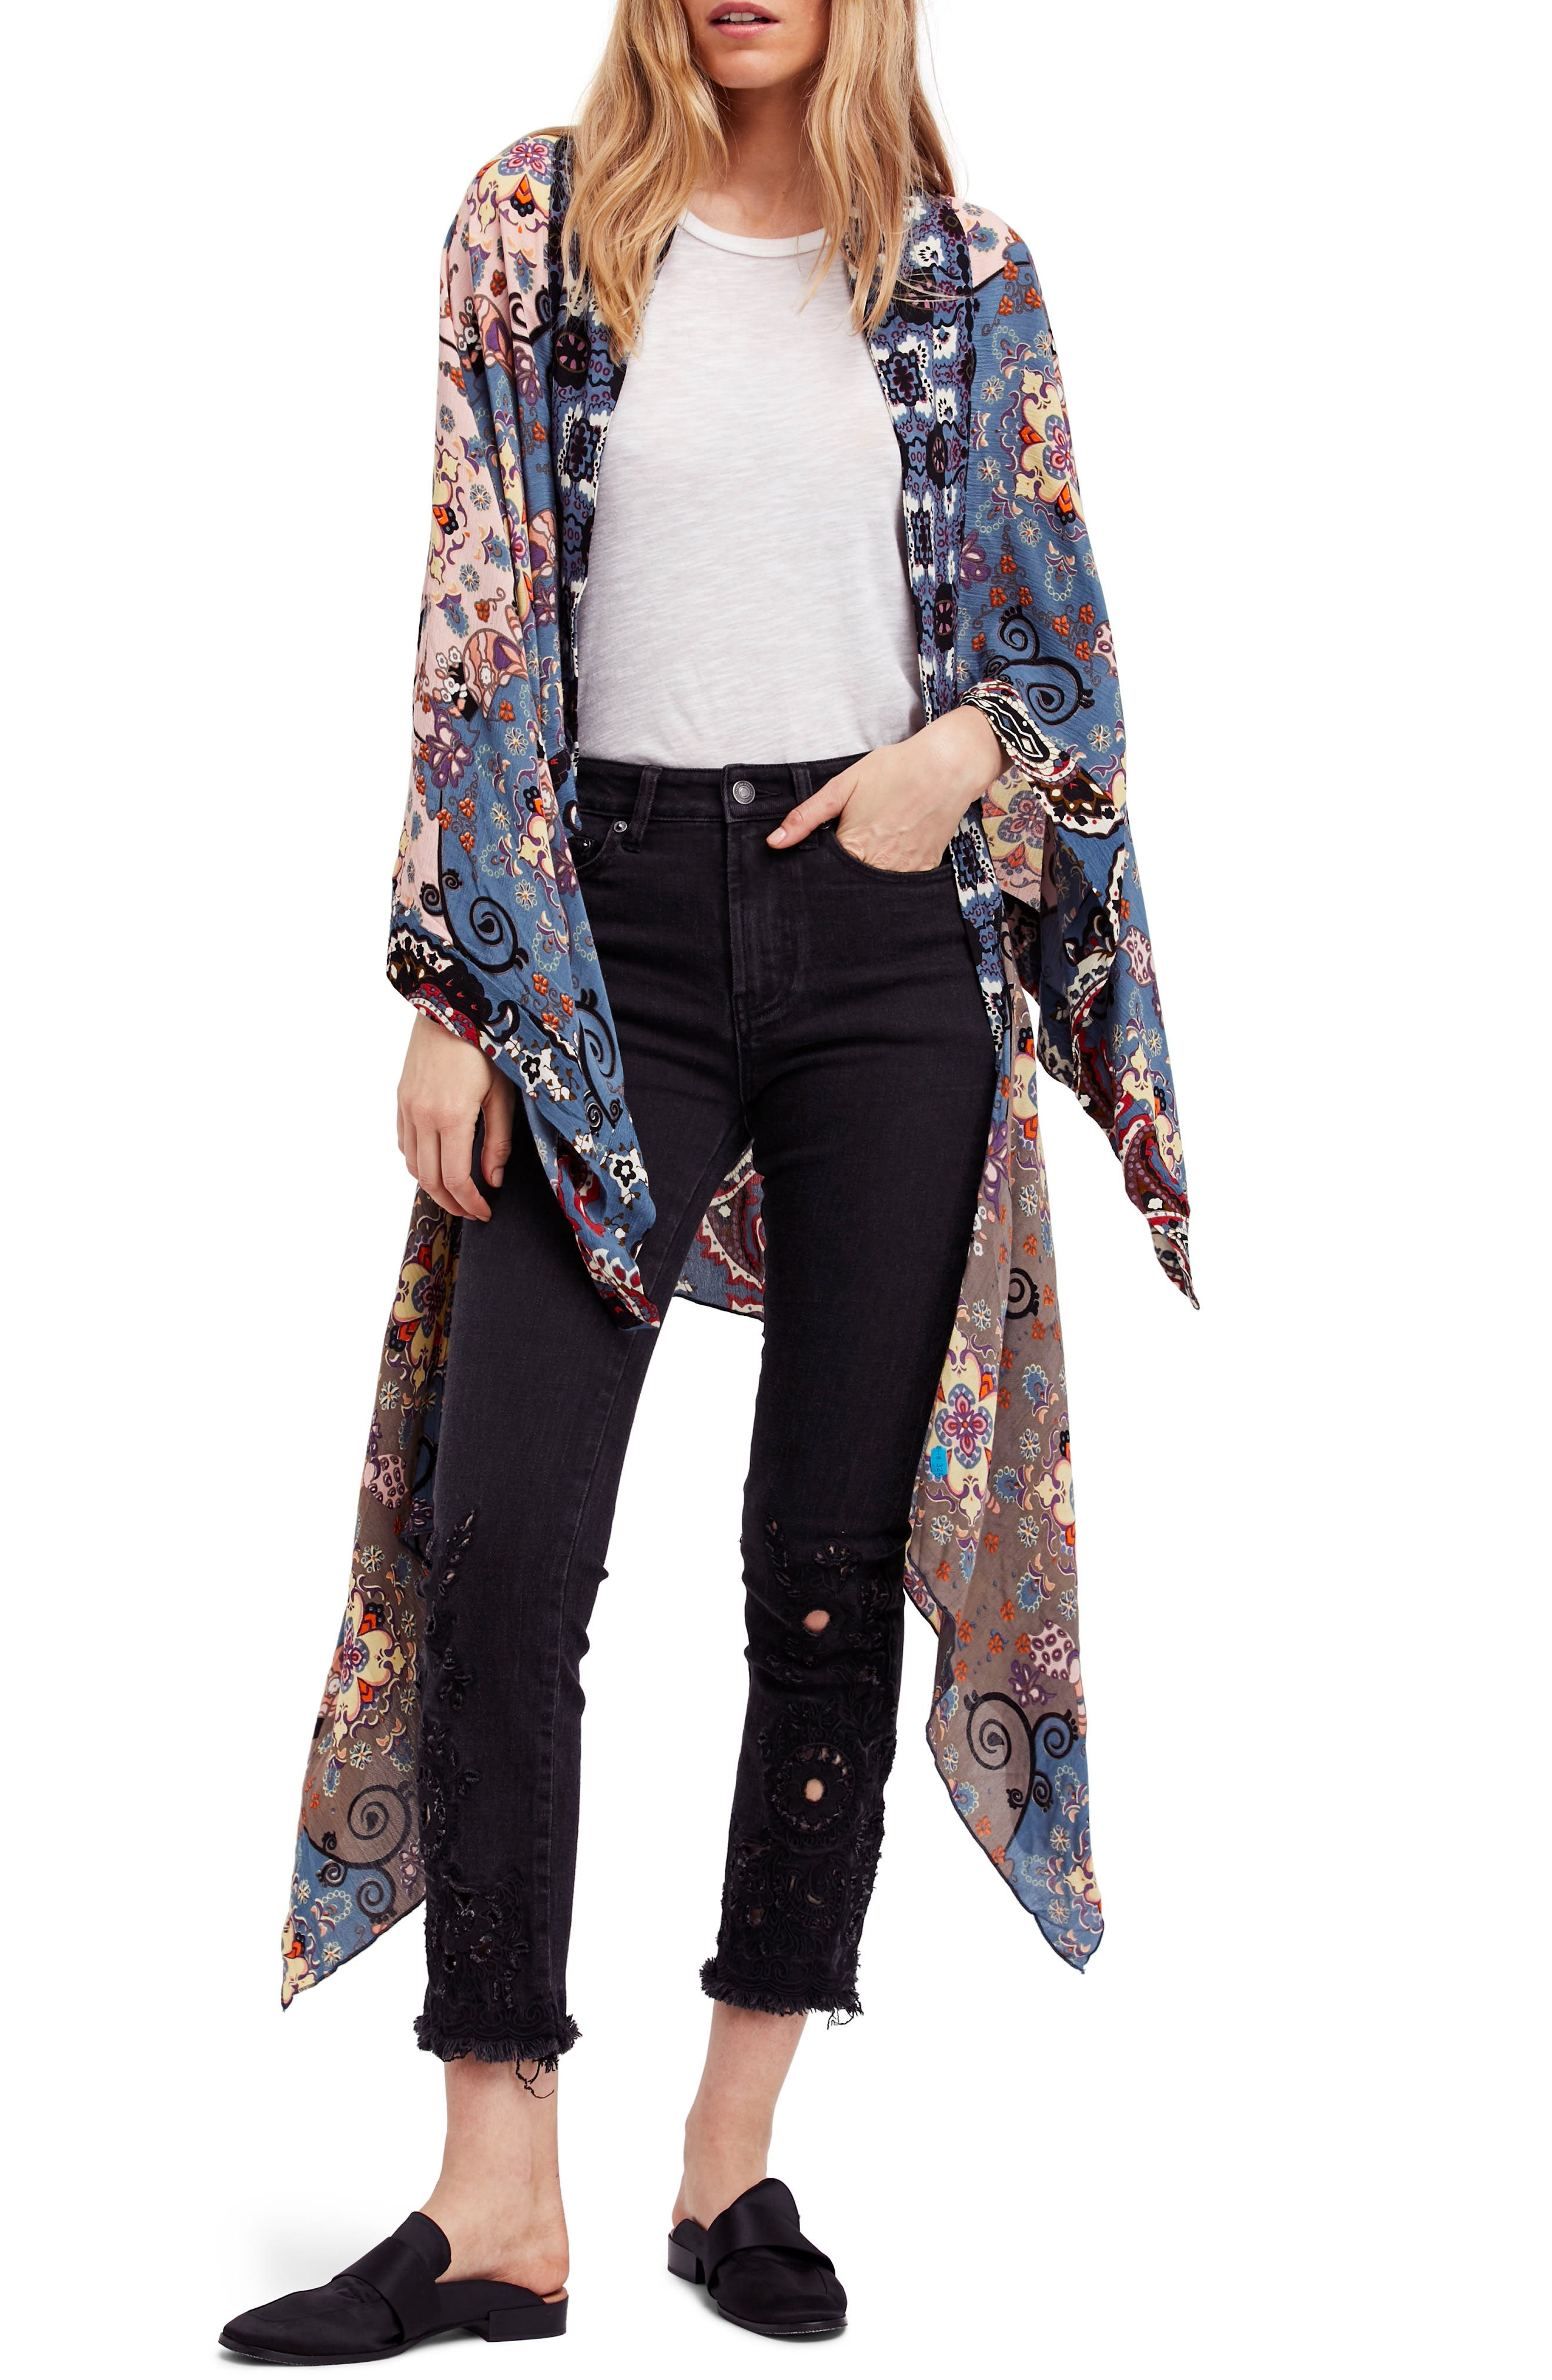 Vintage Coats & Jackets   Retro Coats and Jackets Womens Free People Little Wing Duster $40.80 AT vintagedancer.com